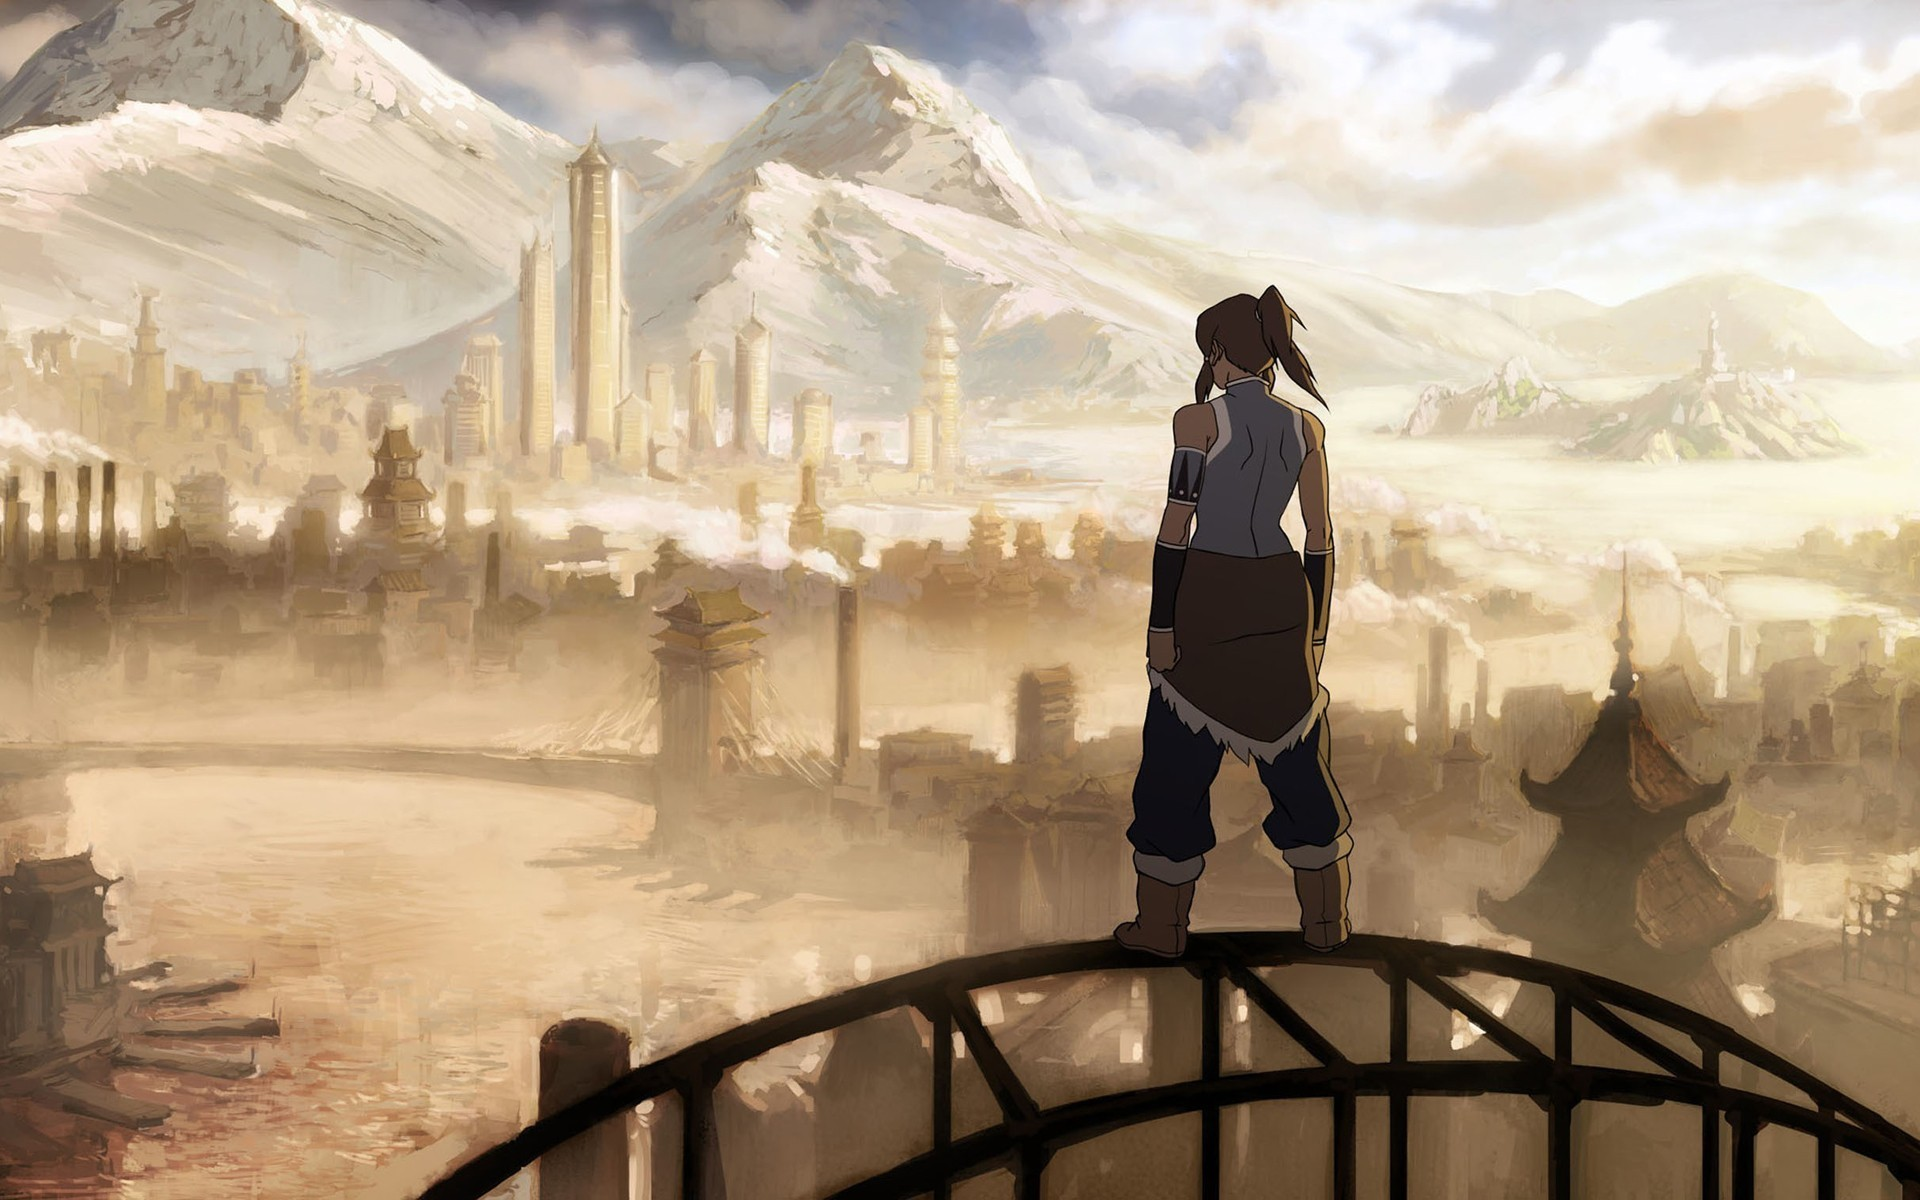 Legend of korra wallpaper hd 70 images 1920x1200 korra avatar legend of korra wallpaper 4378 voltagebd Images